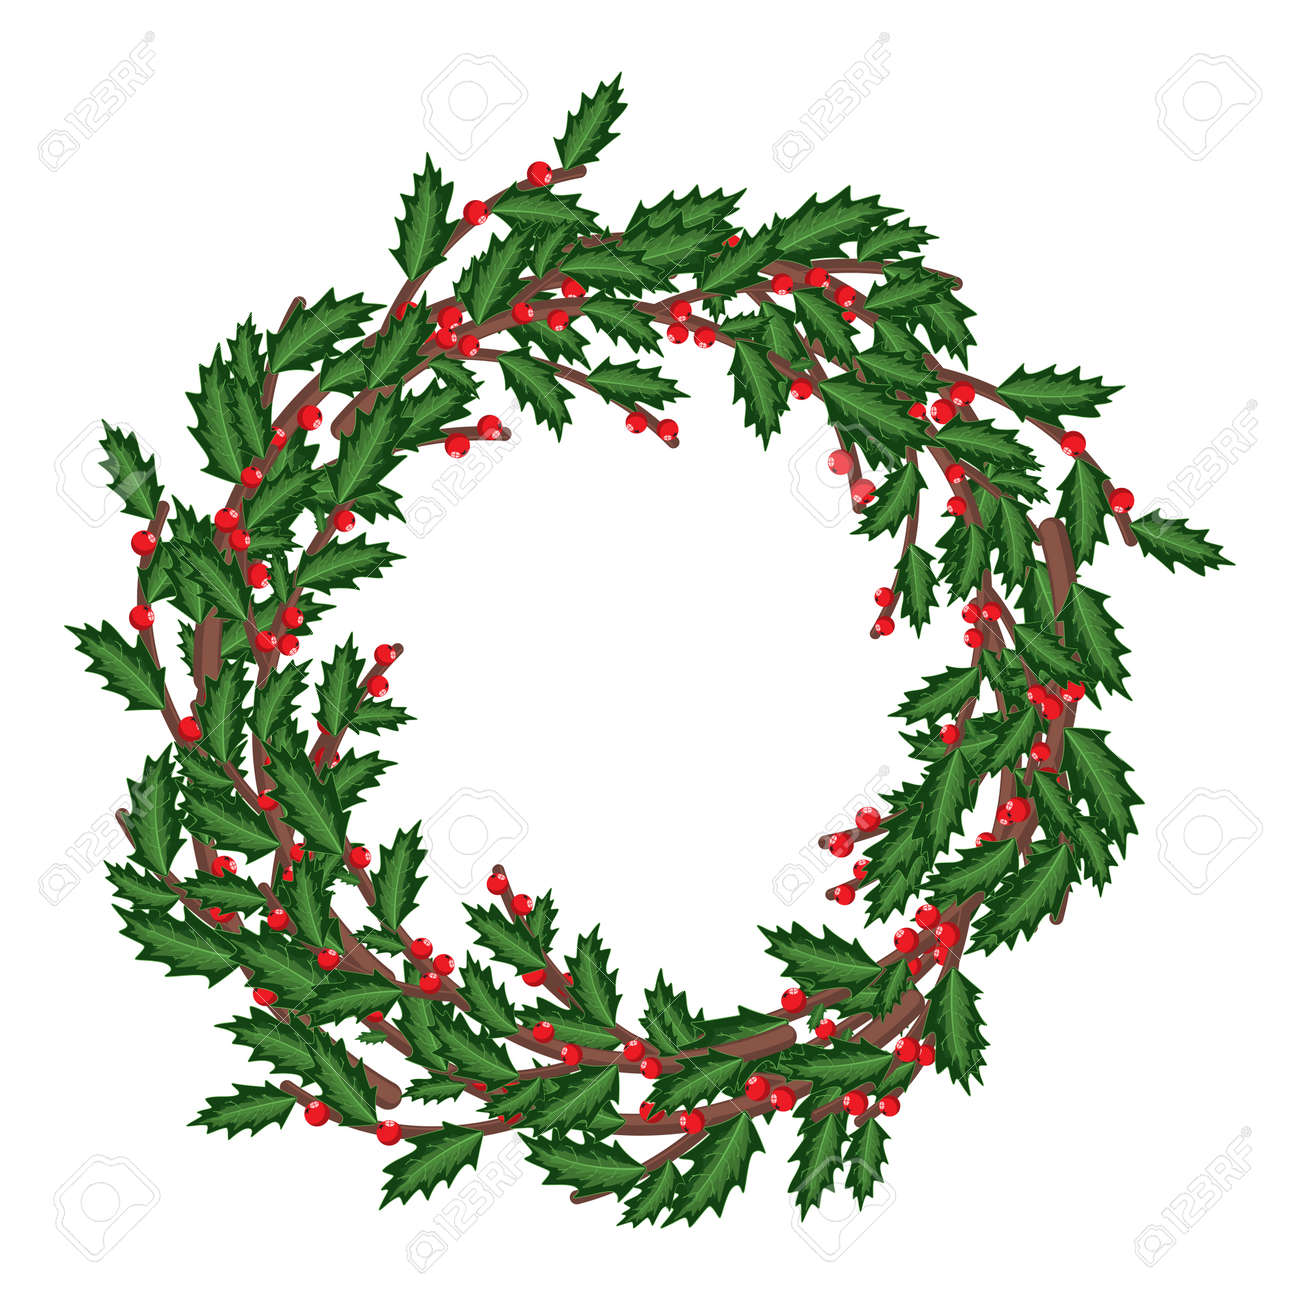 Christmas Holly Berry Wreath Vector Cartoon Holiday Decoration Royalty Free Cliparts Vectors And Stock Illustration Image 112198247